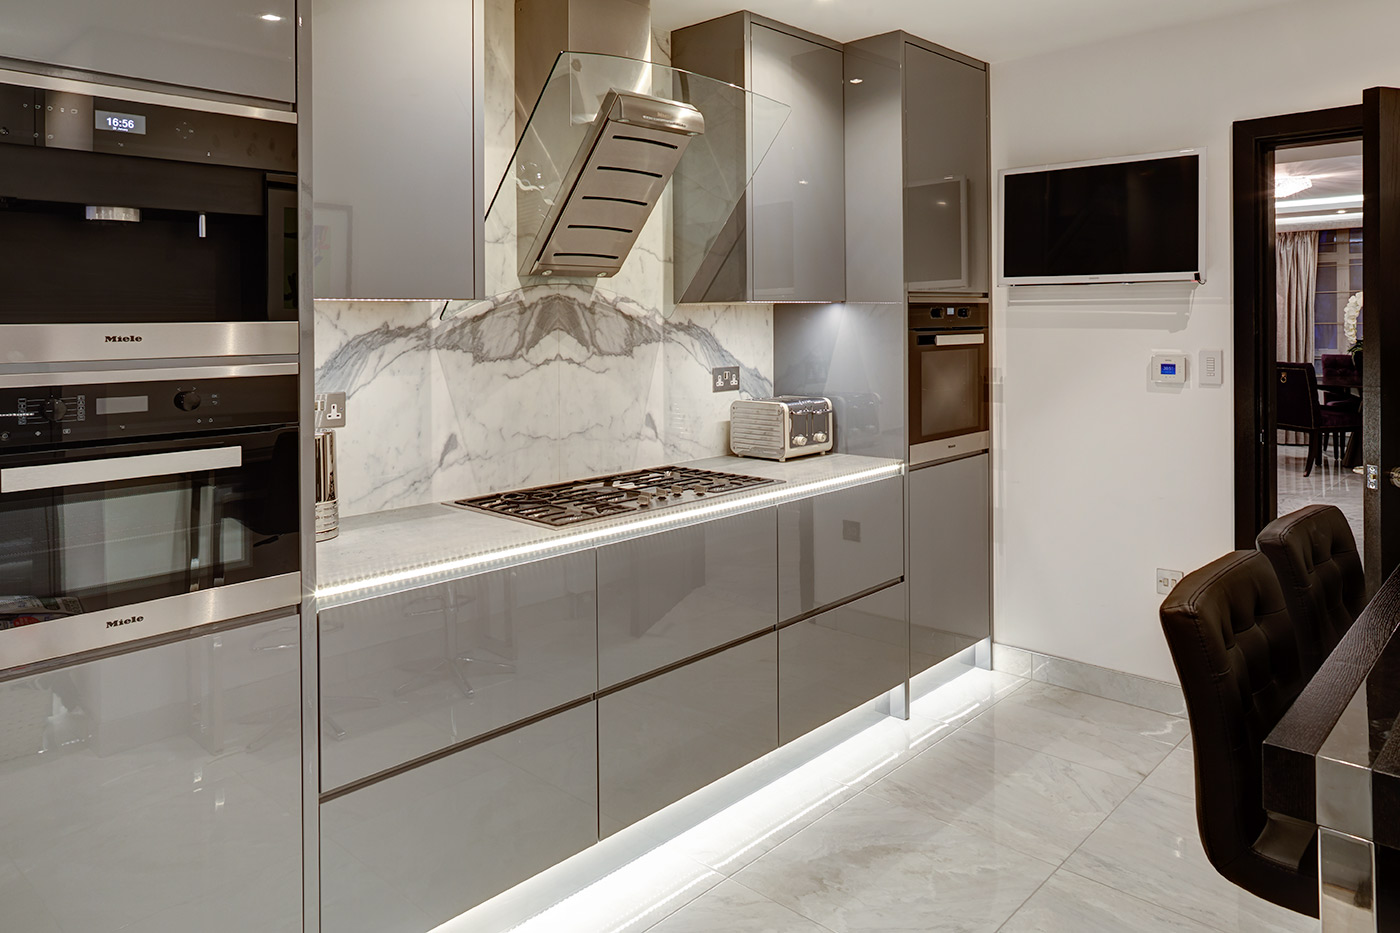 Luxury Kitchen Design - Luxury interiors - High end property London - Expensive Property - Marble Kitchen - Smart Kitchen - Luxury Lighting design